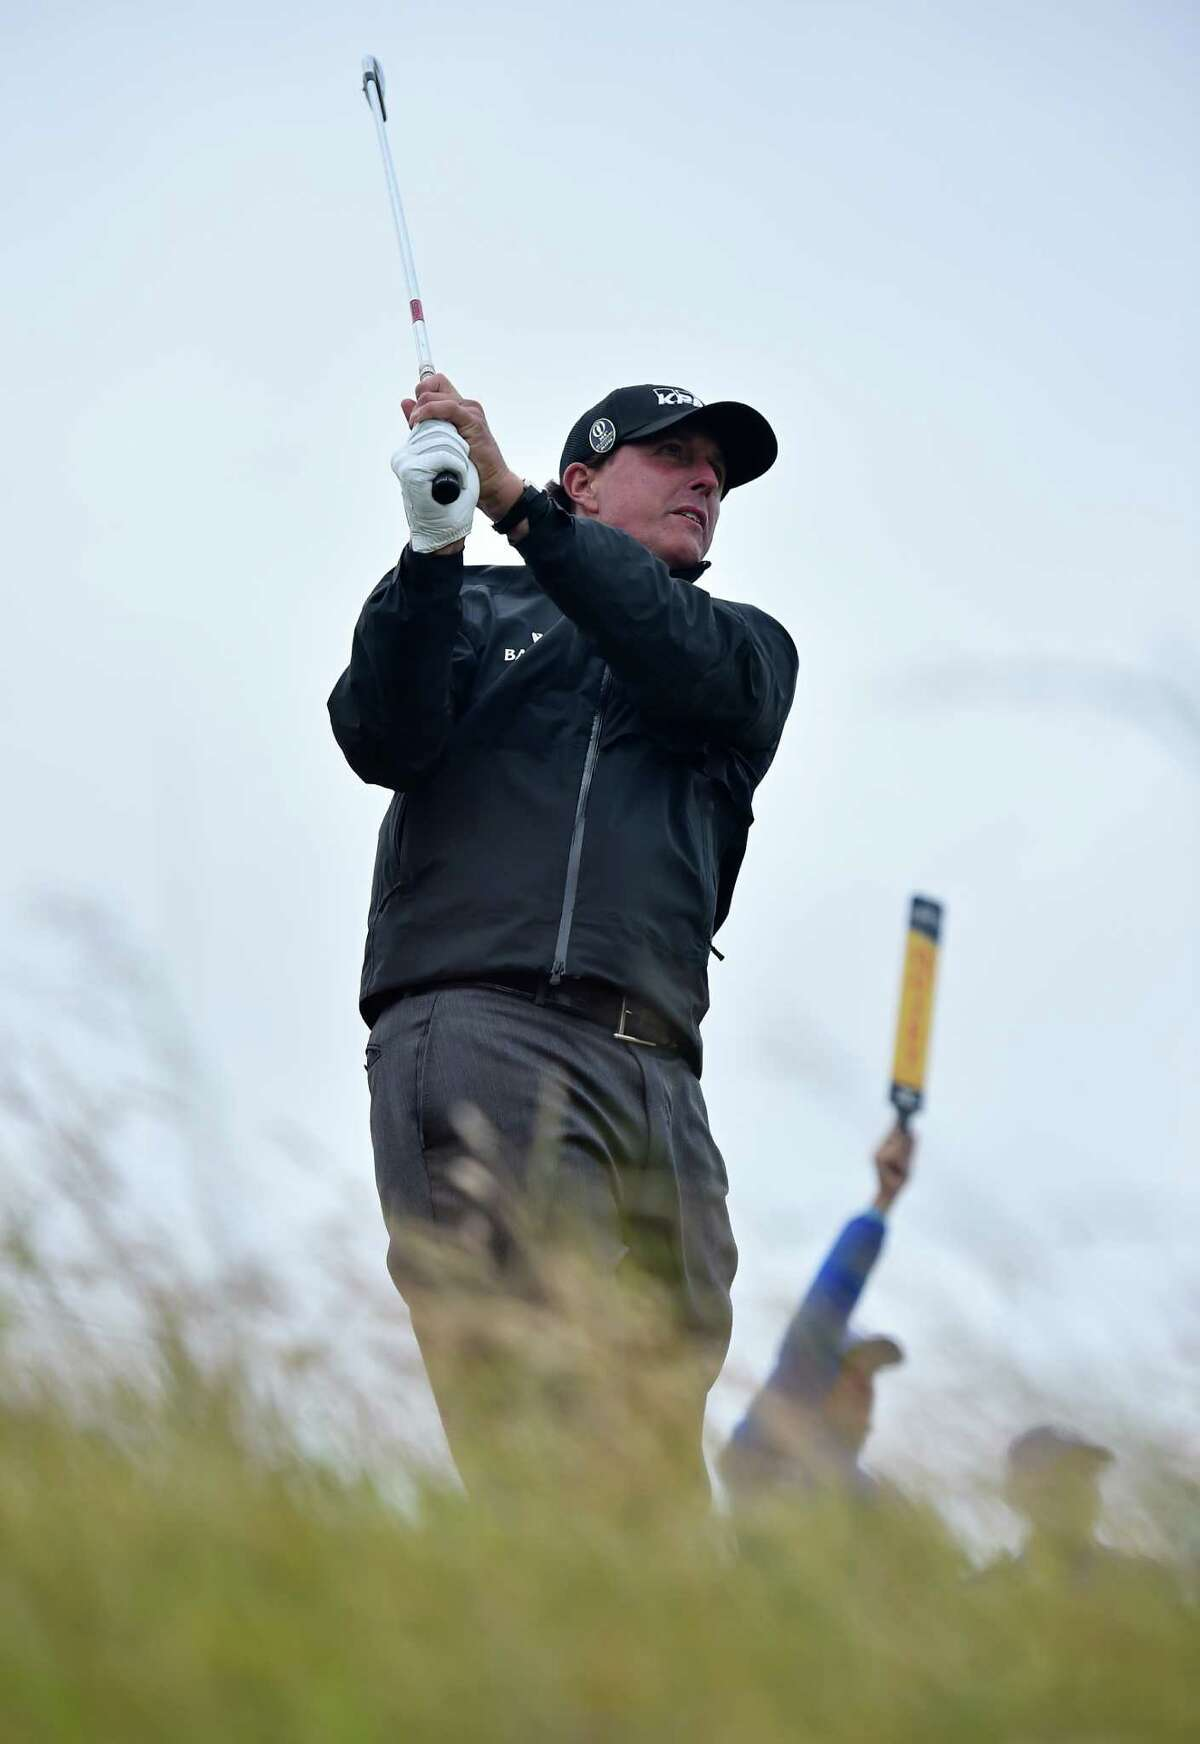 US golfer Phil Mickelson watches his shot from the 16th tee during his first round 70, on the opening day of the 2015 British Open Golf Championship on The Old Course at St Andrews in Scotland, on July 16, 2015. AFP PHOTO / BEN STANSALLBEN STANSALL/AFP/Getty Images